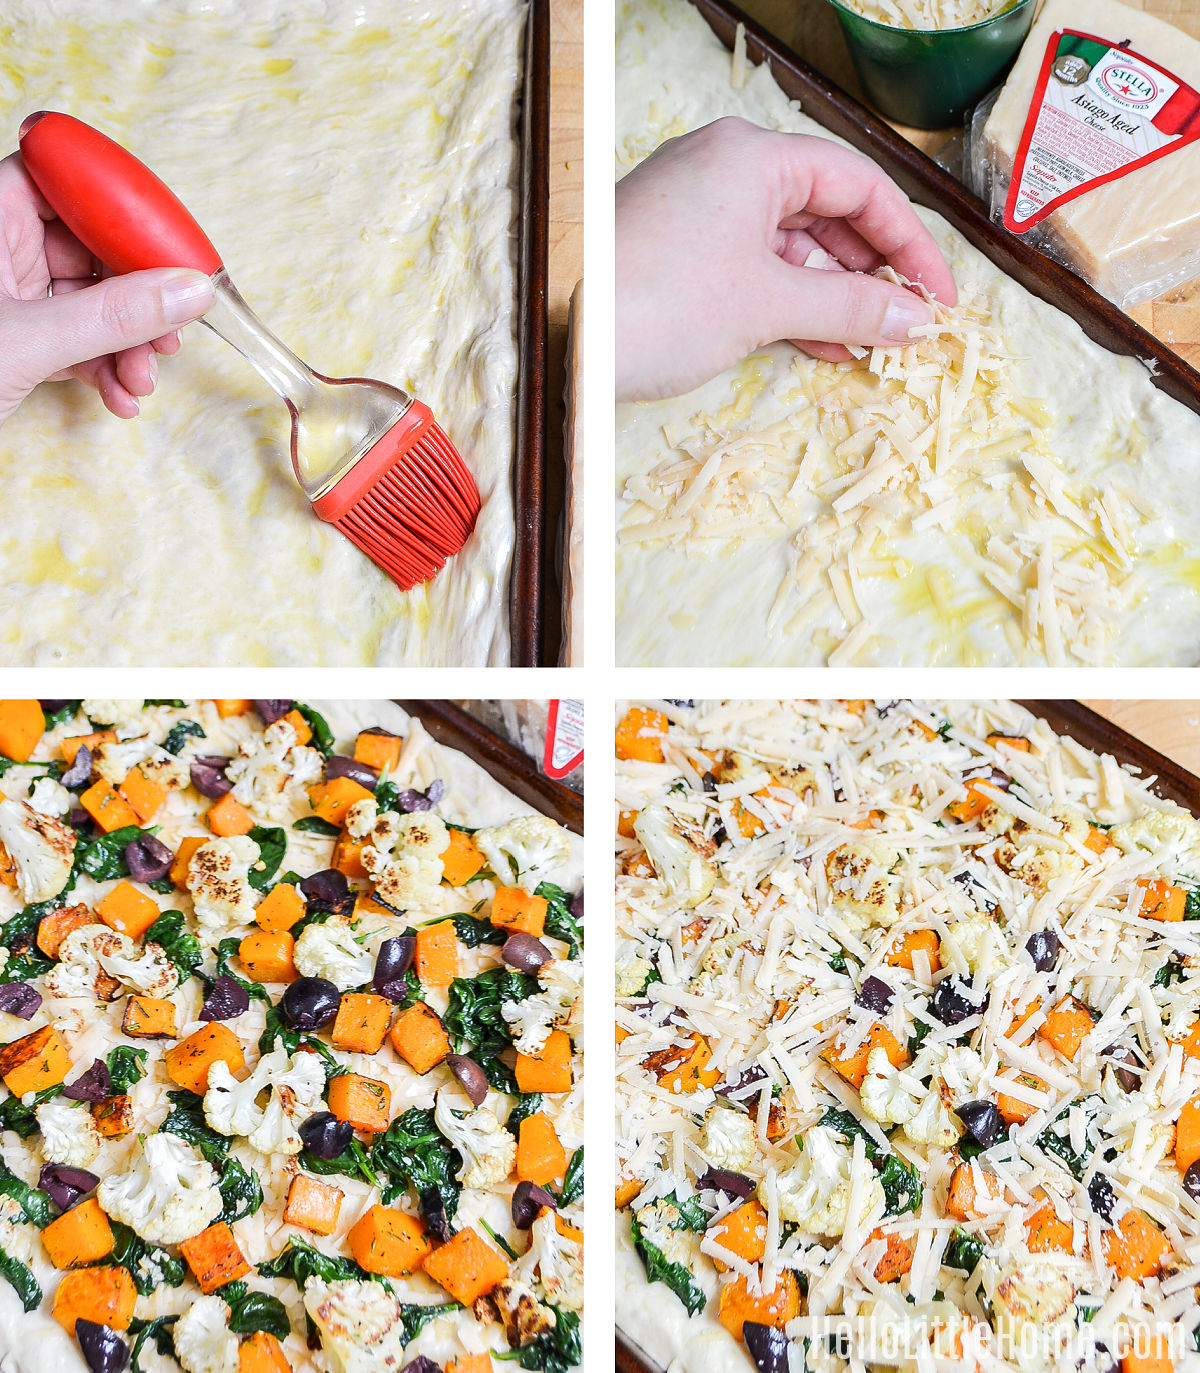 A photo collage showing the toppings being added to the fall veggie pizza.